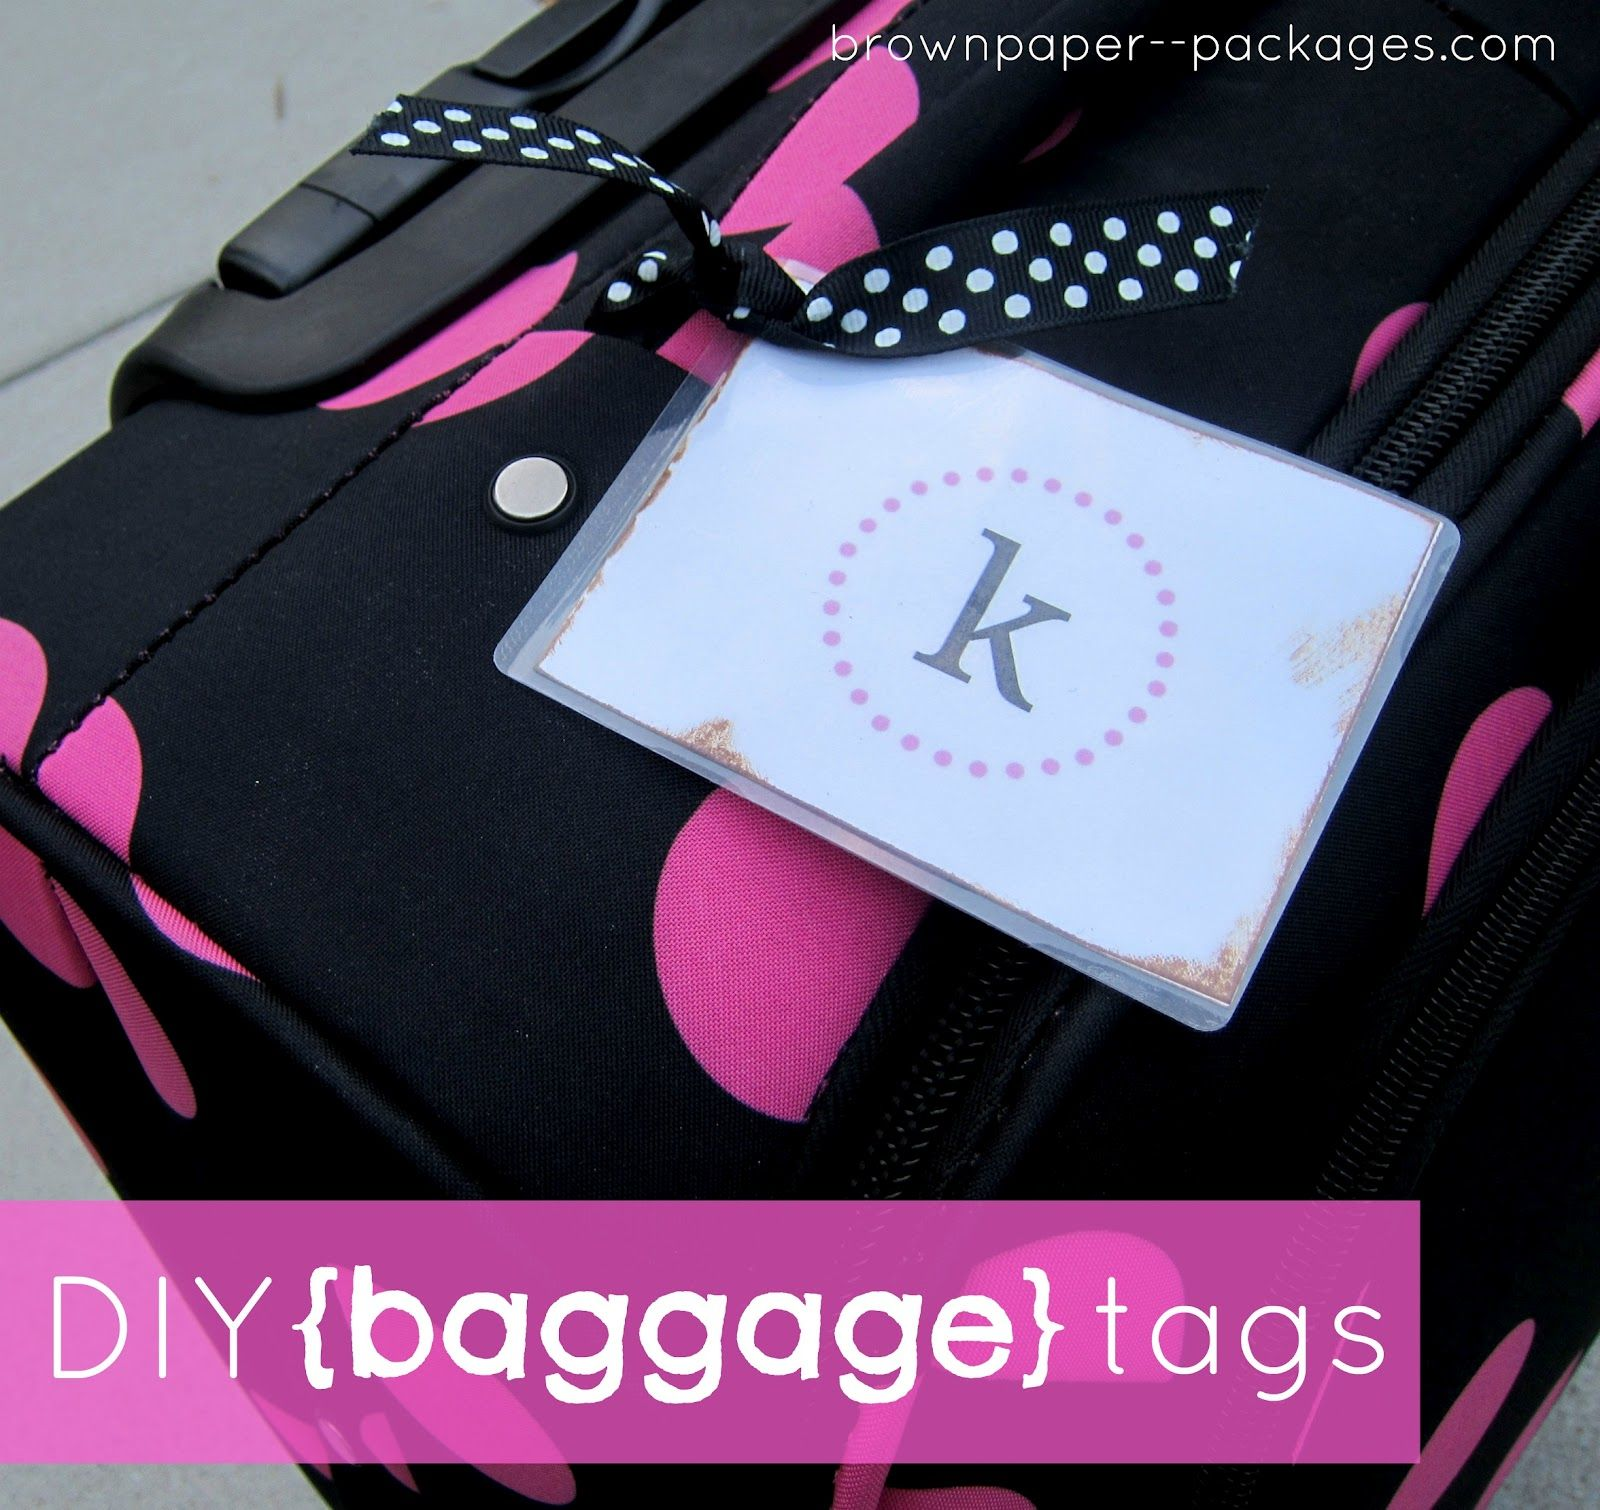 It's summer! Our family has some big trips coming up in the next few months, and I wanted to create some fun and easy baggage tags for all ...